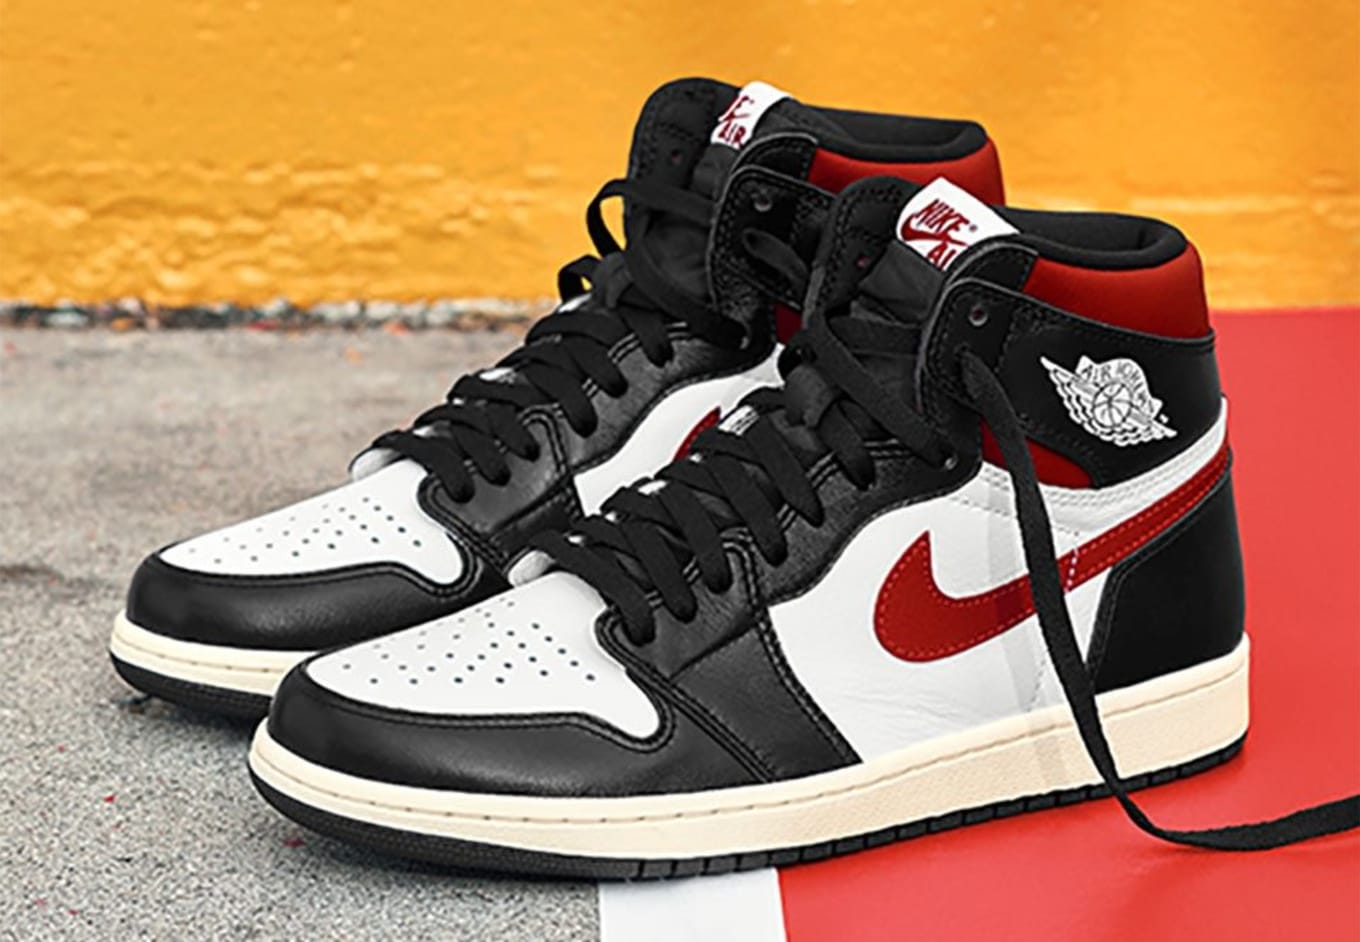 hot sales 527ea 2ef5d Air Jordan 1 Retro High OG Black White-Sail-Gym Red